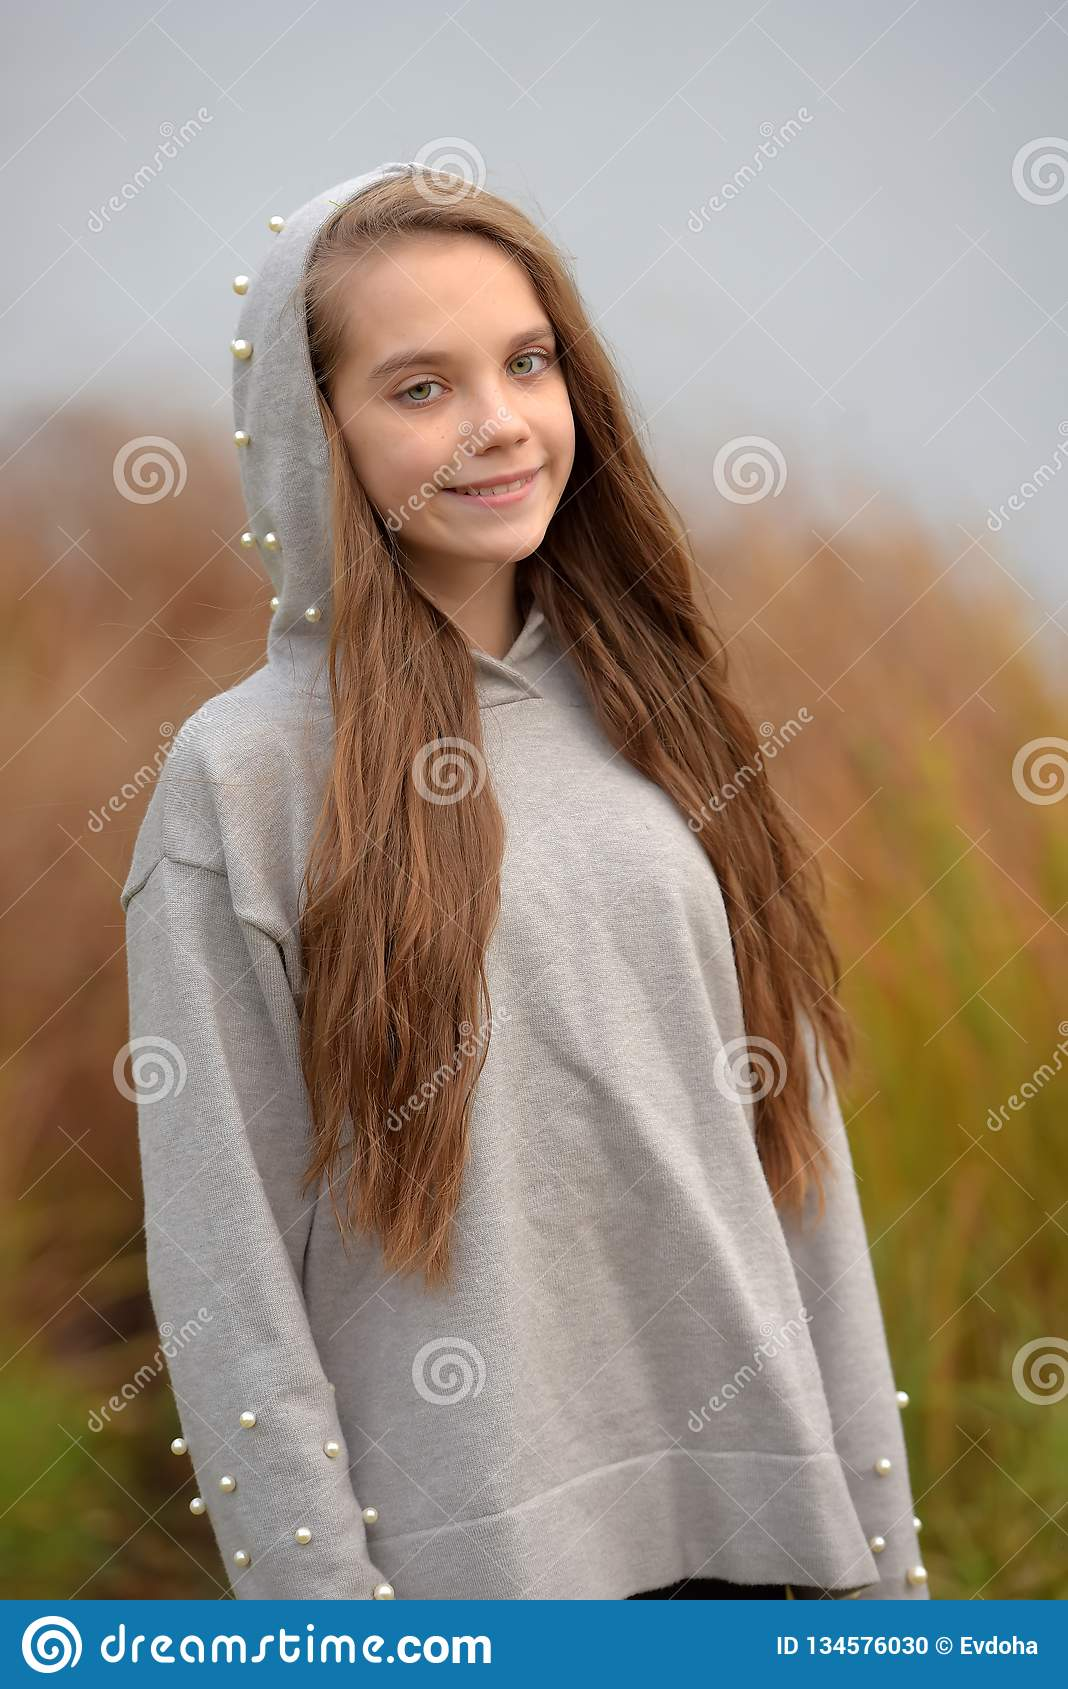 Teen Girl With Long Brown Hair In A Gray Sweater Stock Photo - Image of attractive. solitude: 134576030